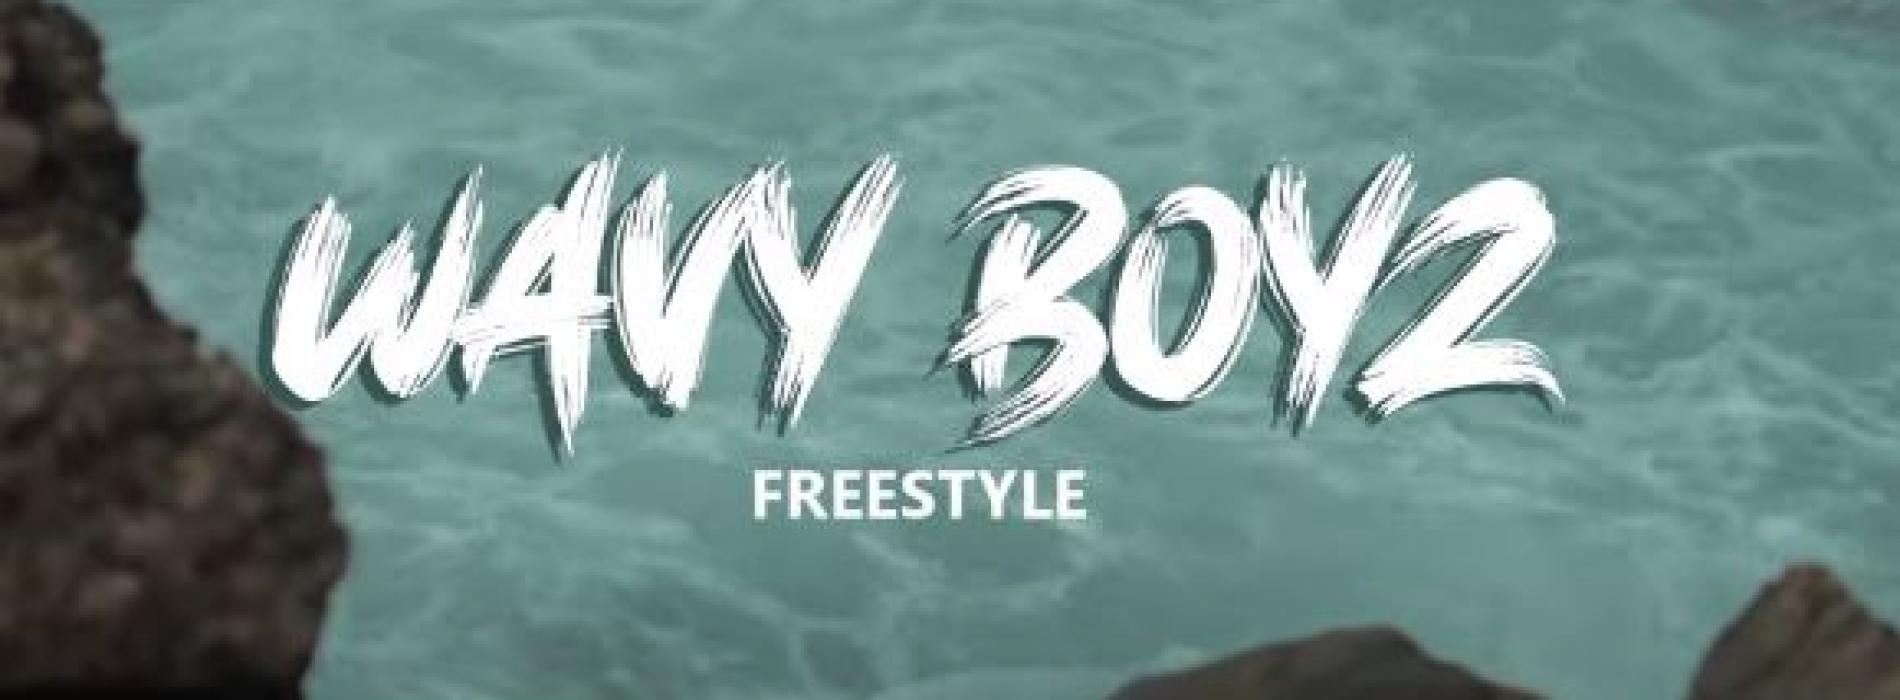 """New Music : Dope Gang """"WAVY BOYZ"""" [freestyle] ft Fyusion, Reezy & Teecee (Official Video)"""